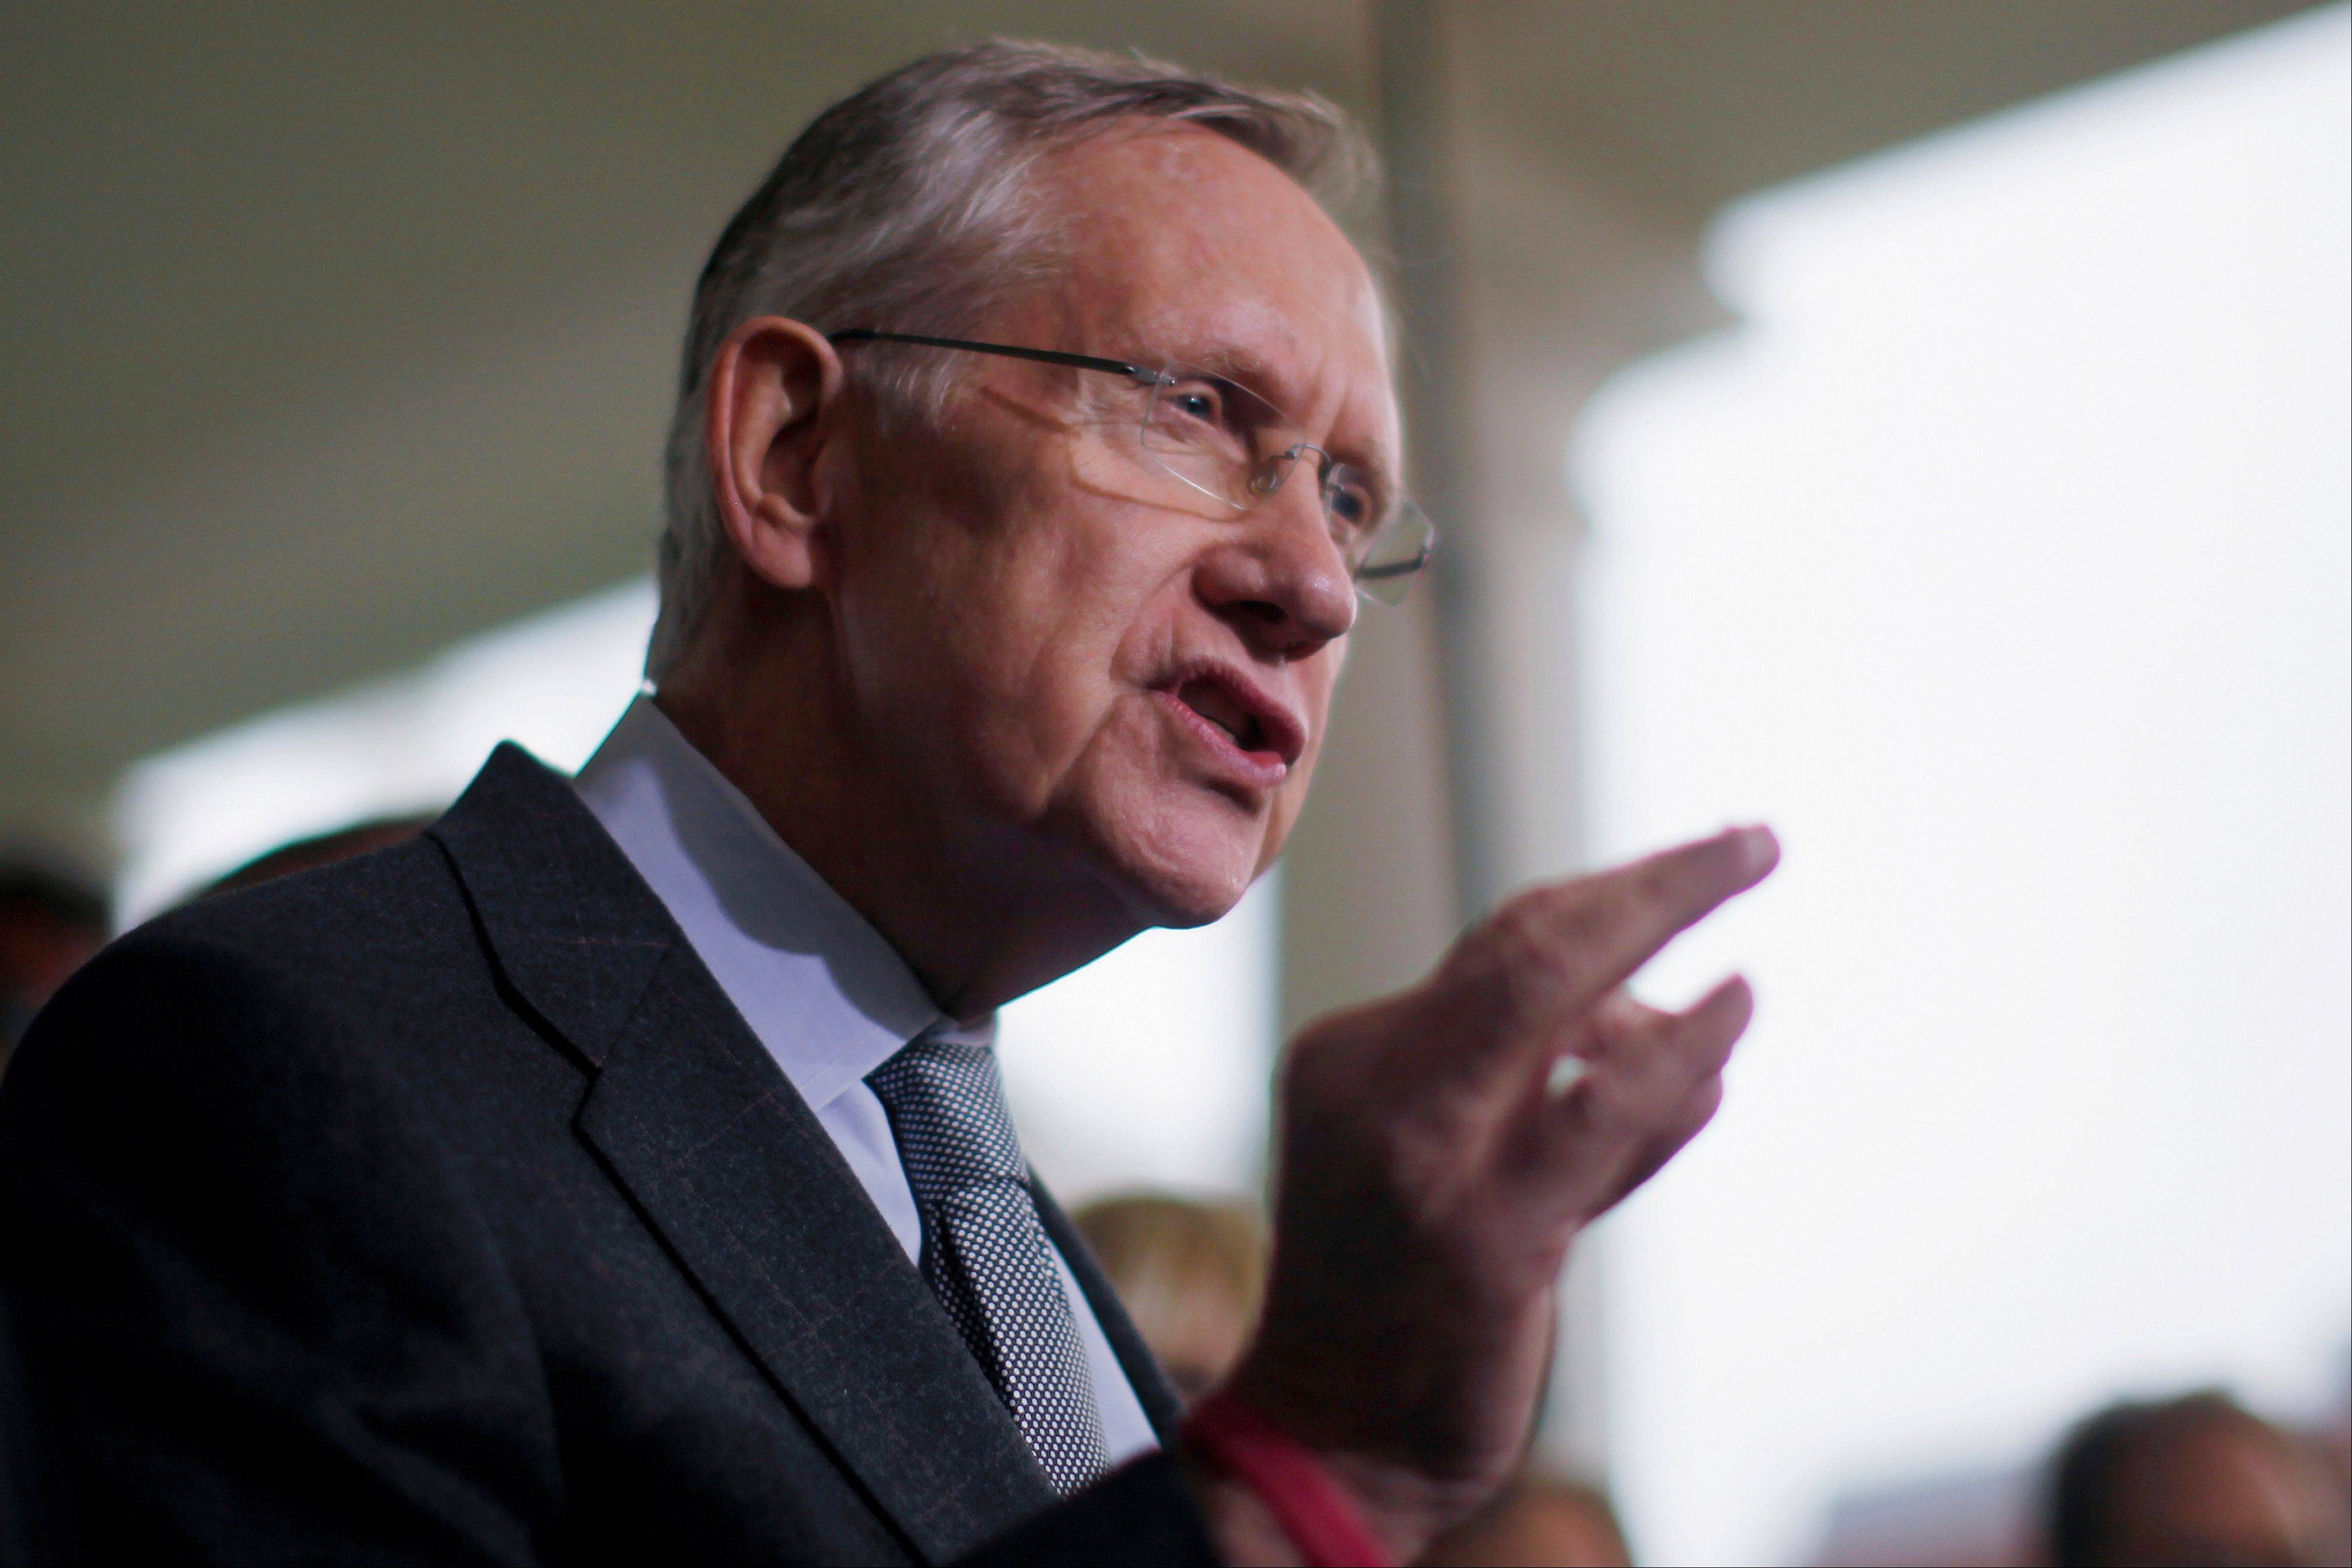 Senate Majority Leader Harry Reid of Nevada speaks to reporters Thursday outside the White House.